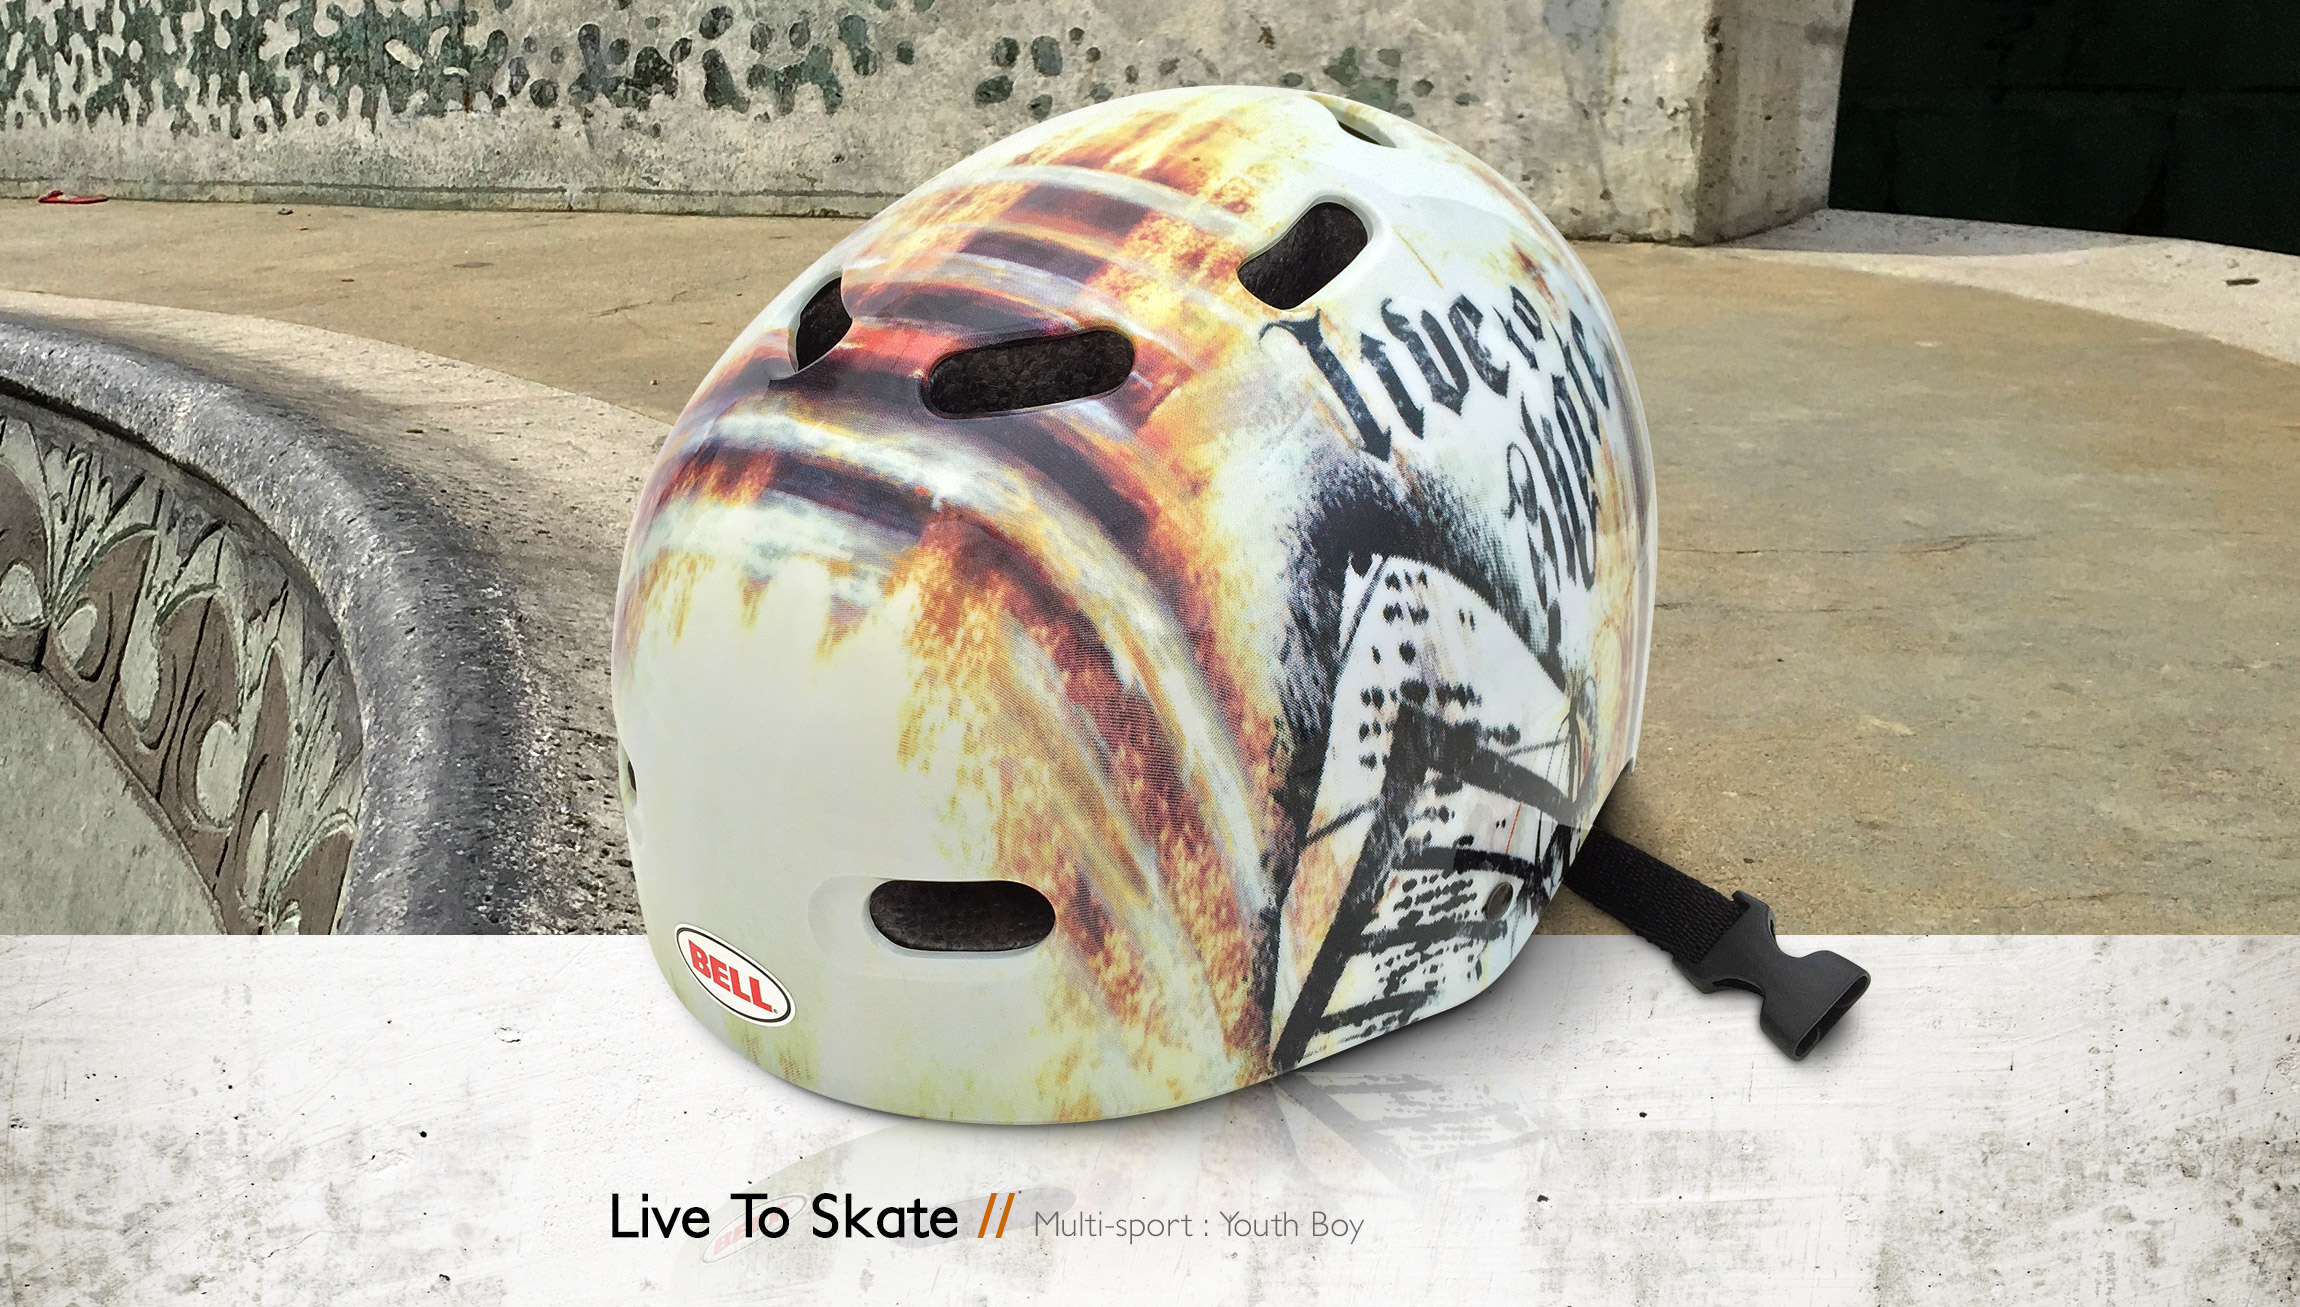 Bell Helmets LIve To Skate multi-sport youth boy bike & skate helmet design - Graphic Regime